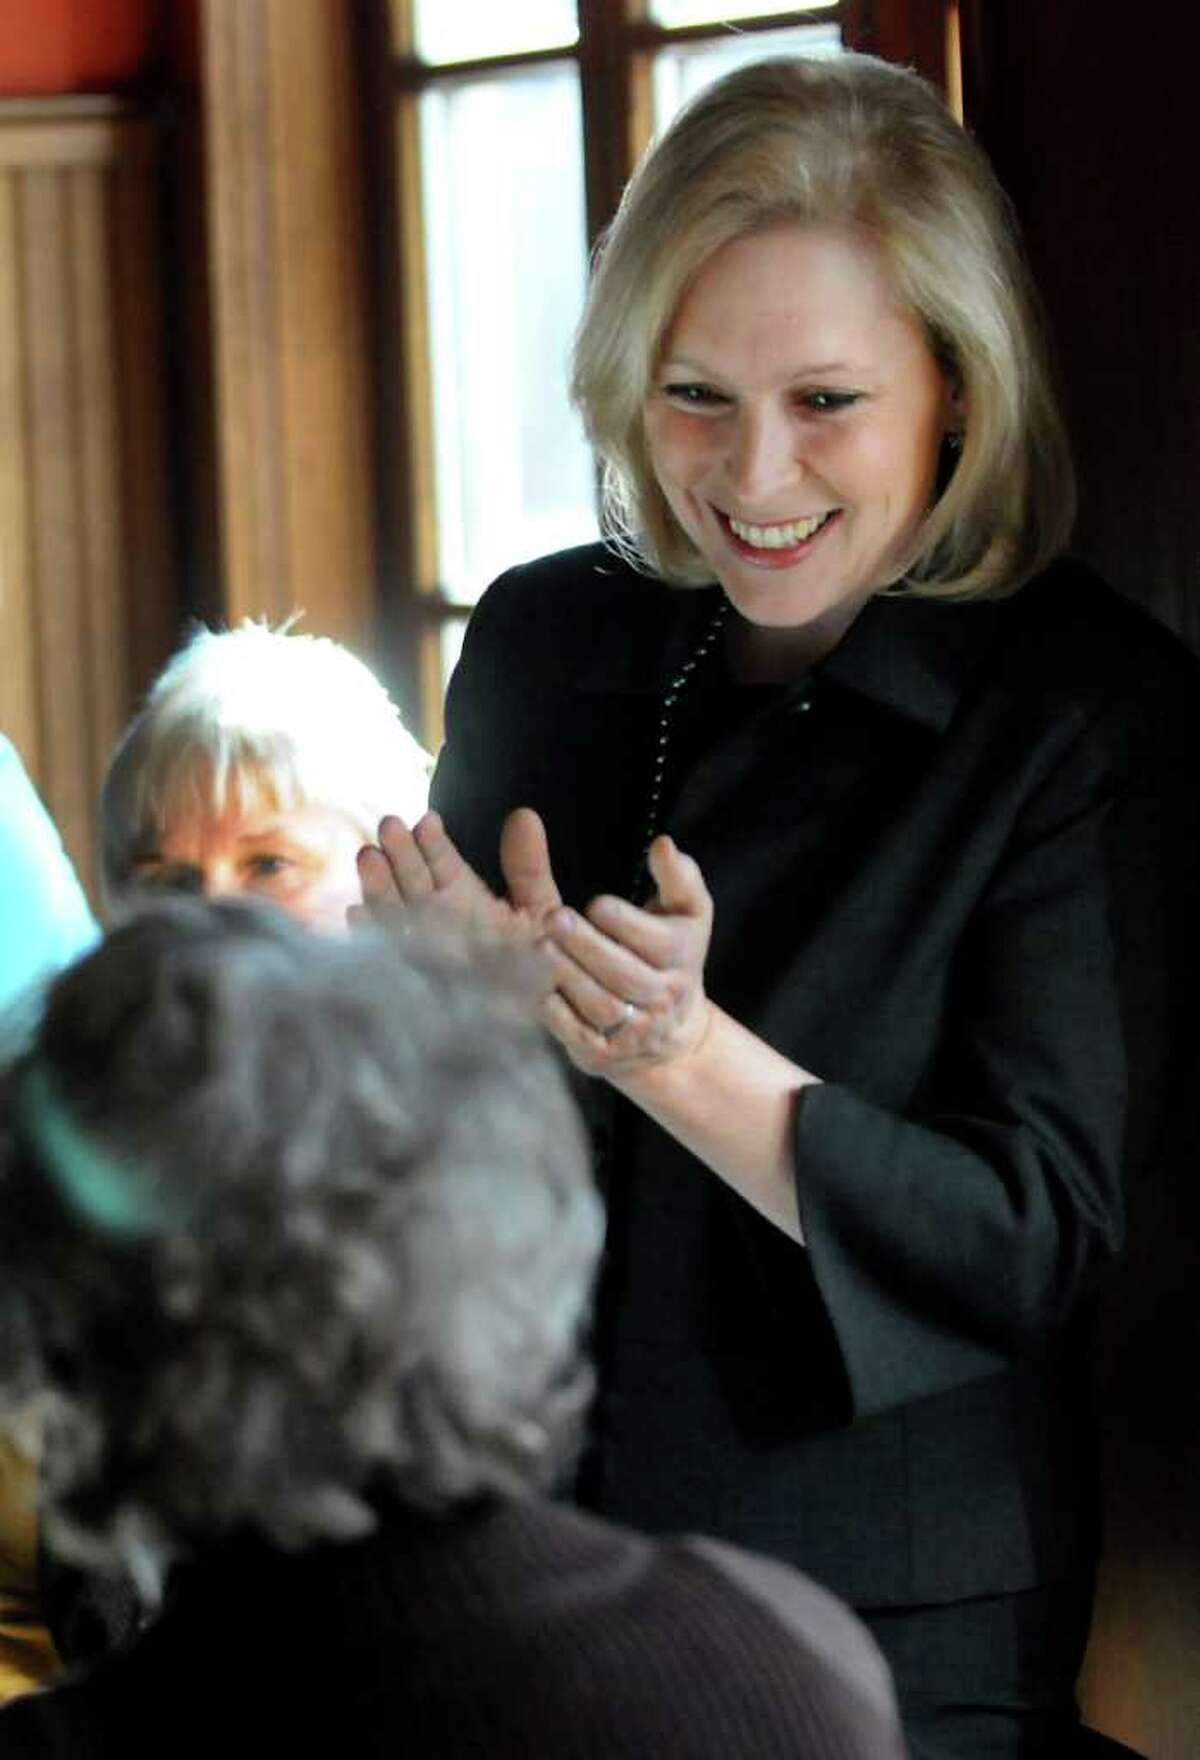 Local business women welcome U.S. Sen. Kirsten Gillibrand, right, during the Capital Region Women's Economic Empowerment Roundtable on Friday, Feb. 17, 2012, at the Midtown Tap & Tea Room in Albany, N.Y. (Cindy Schultz / Times Union)